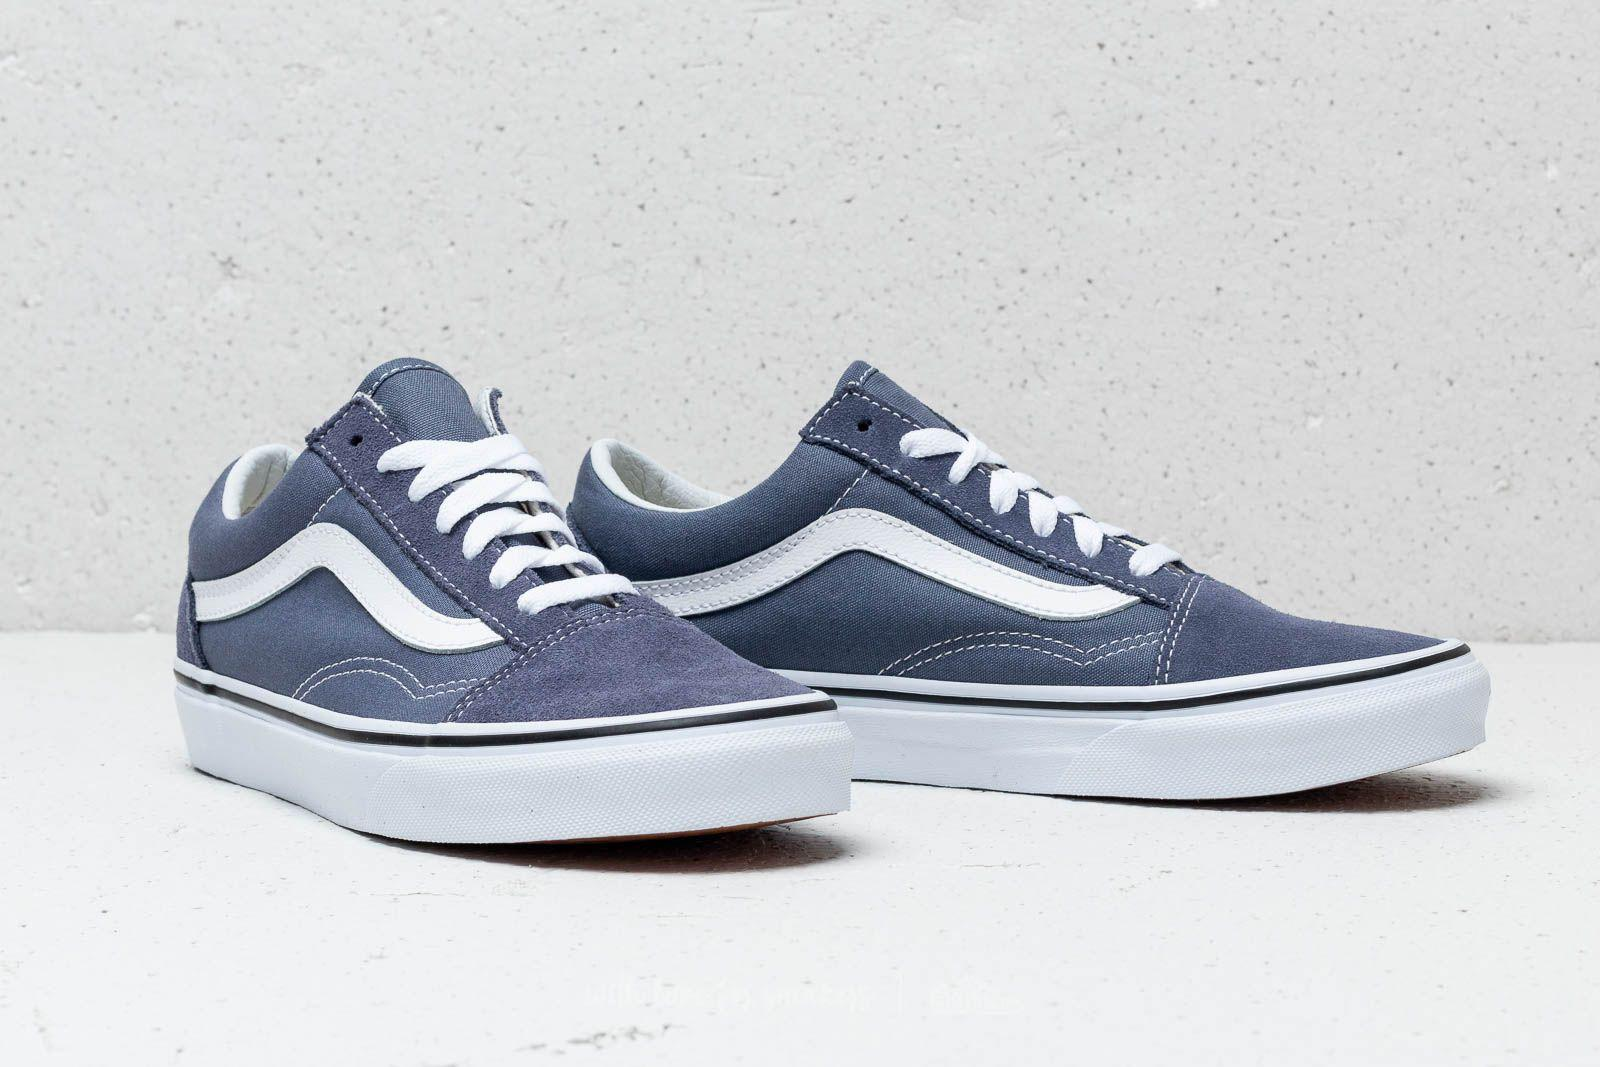 7e5b3935b92 Lyst - Vans Old Skool Grisaille  True White for Men